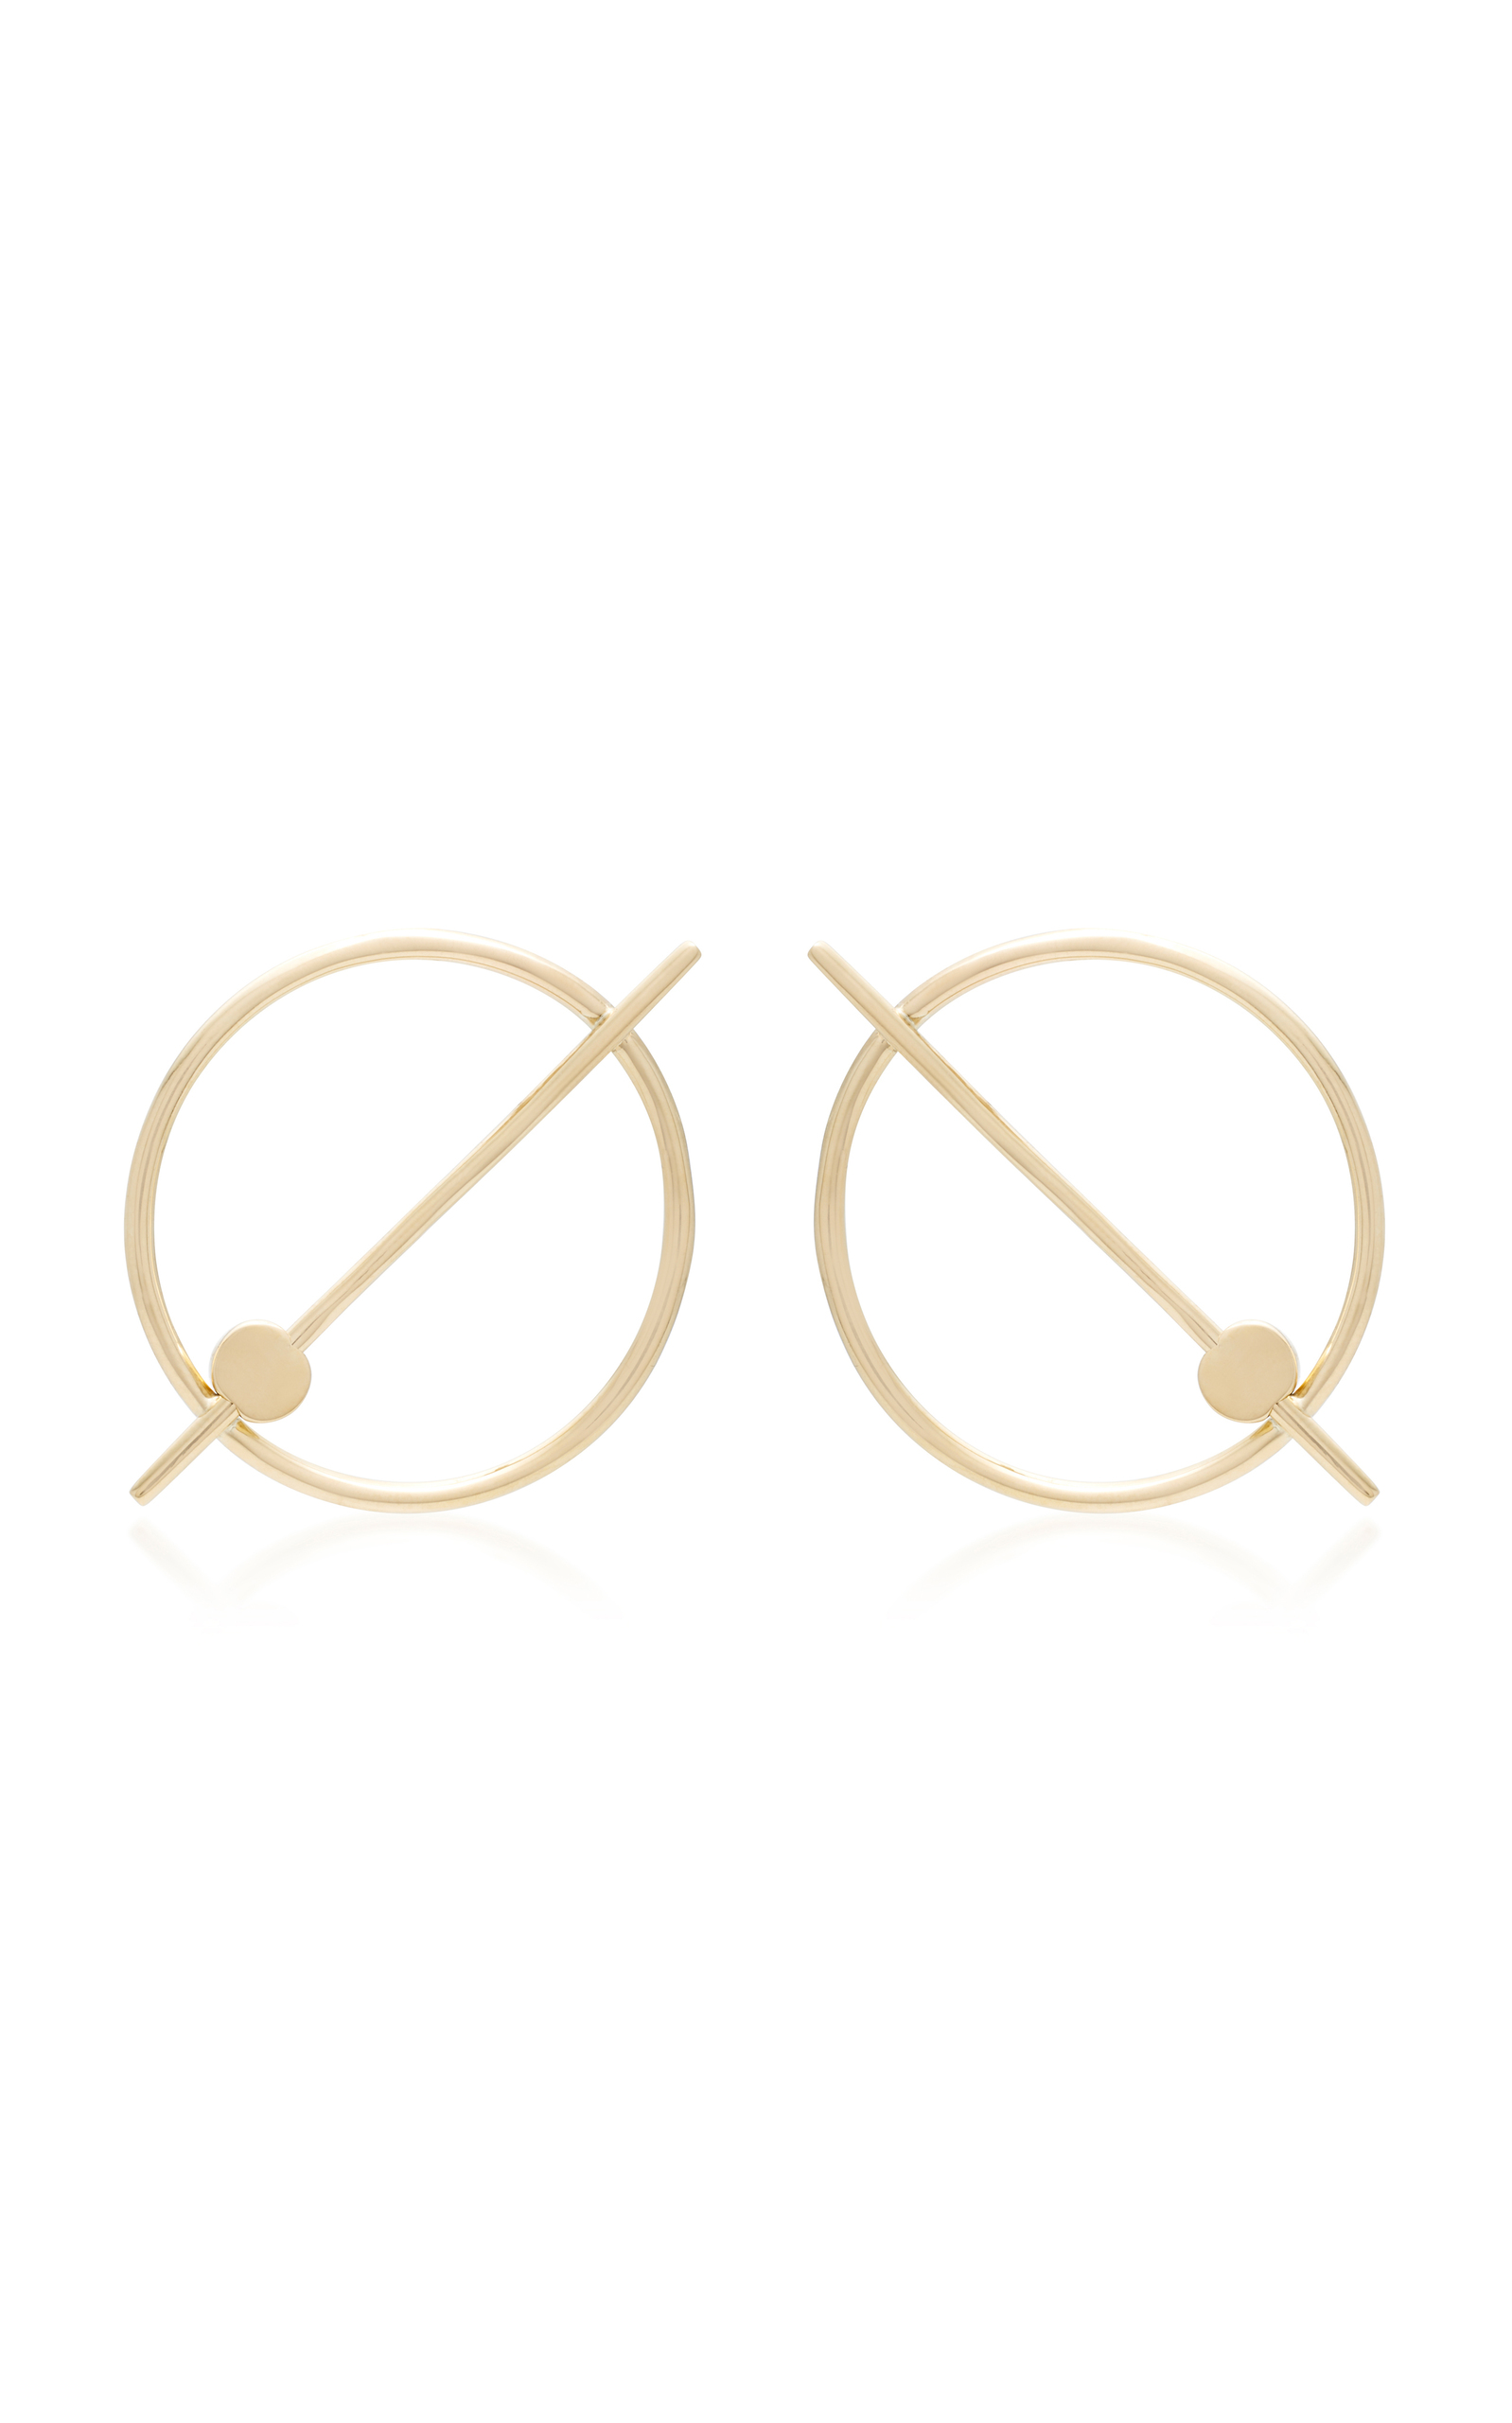 PILI RESTREPO AQUILO 14K GOLD EARRINGS